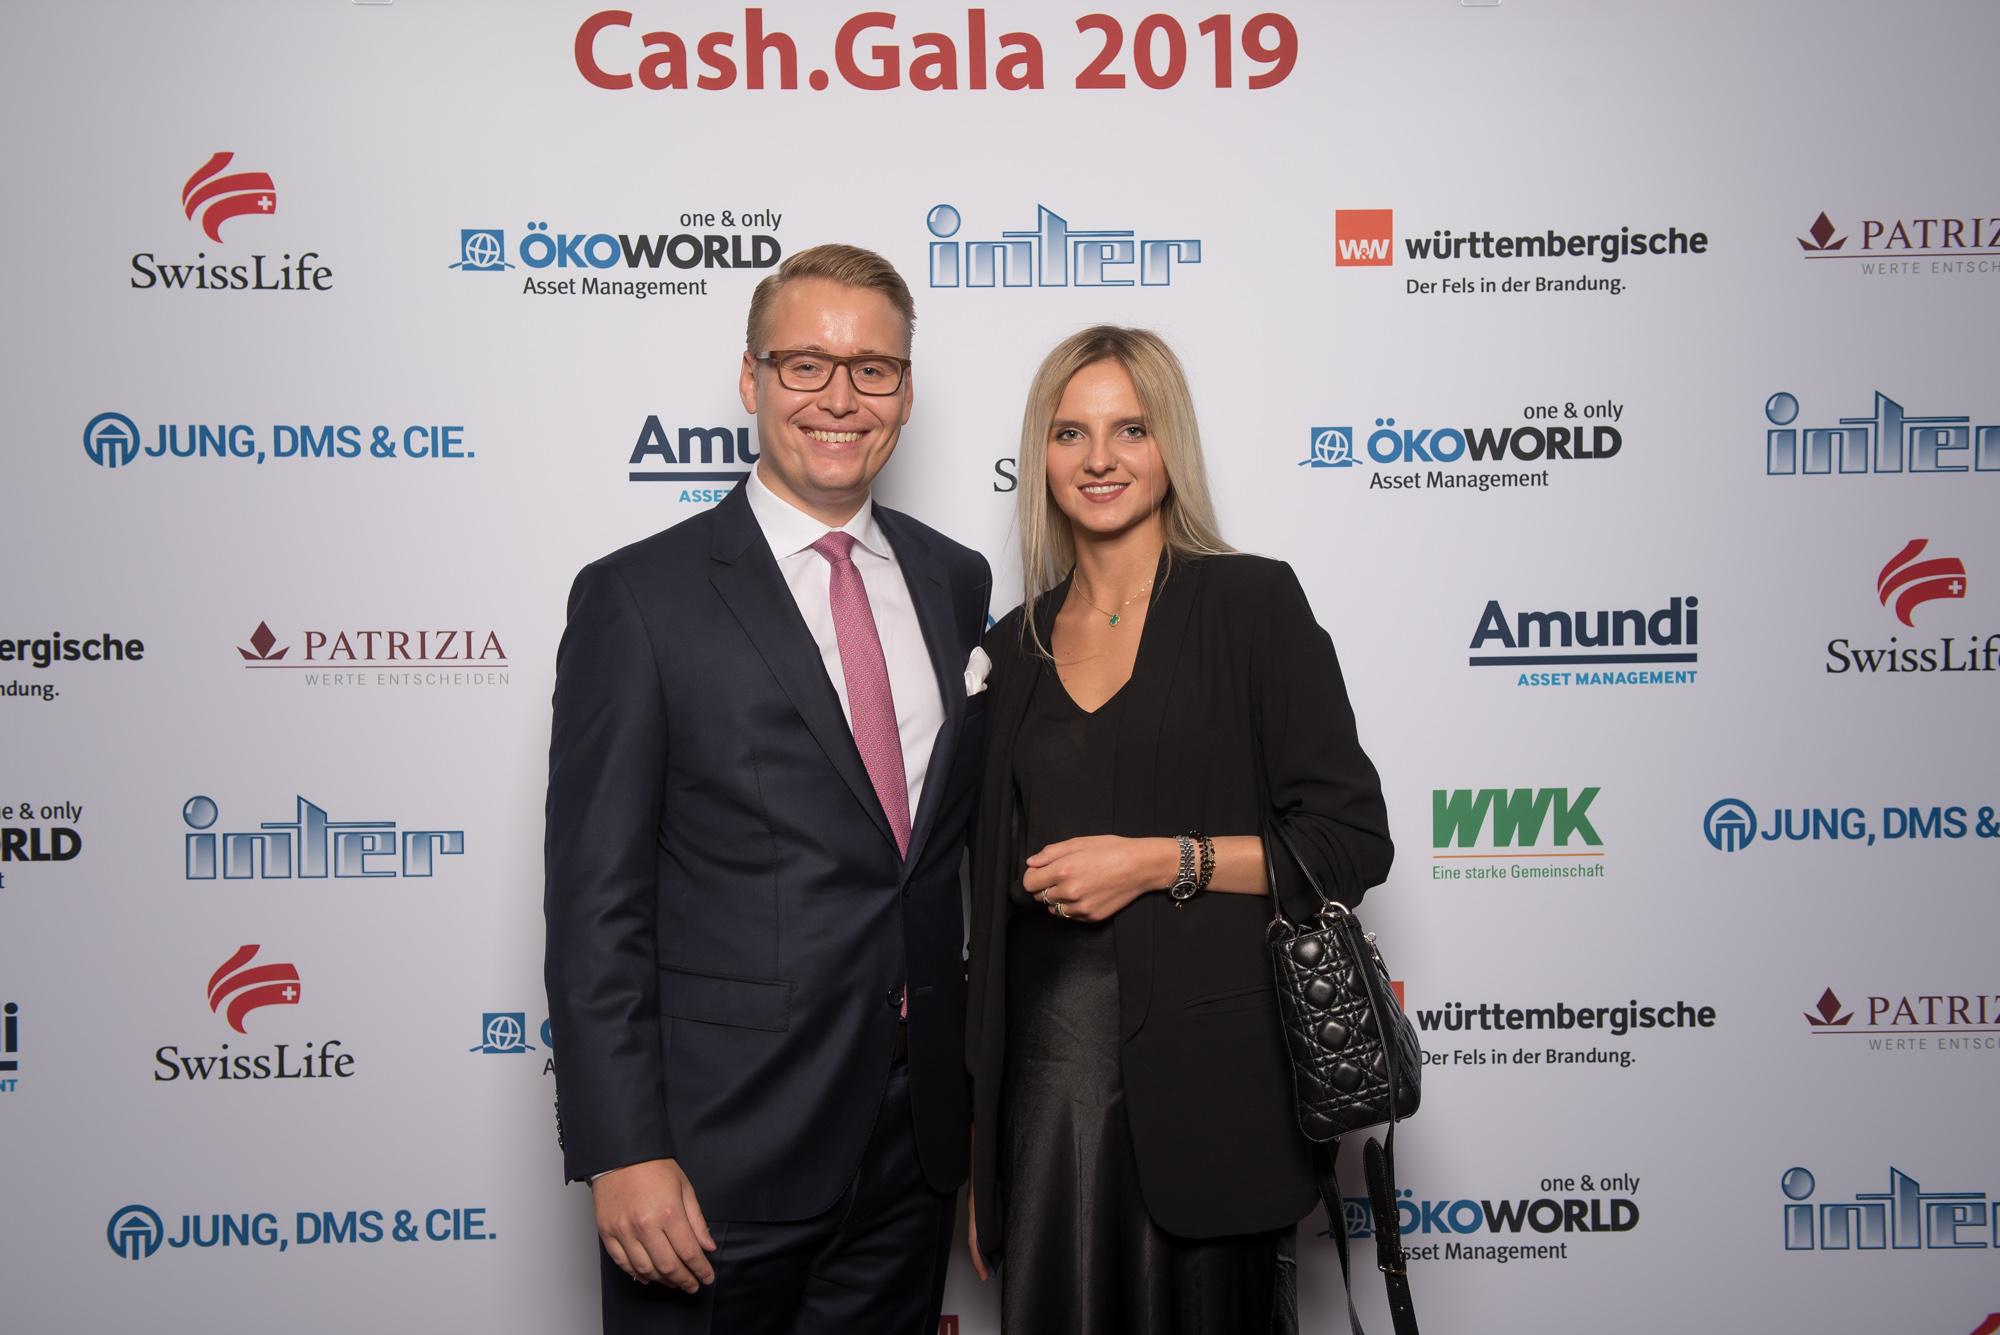 CashGala 2019 0065 AM DSC7134 in Cash.Gala 2019